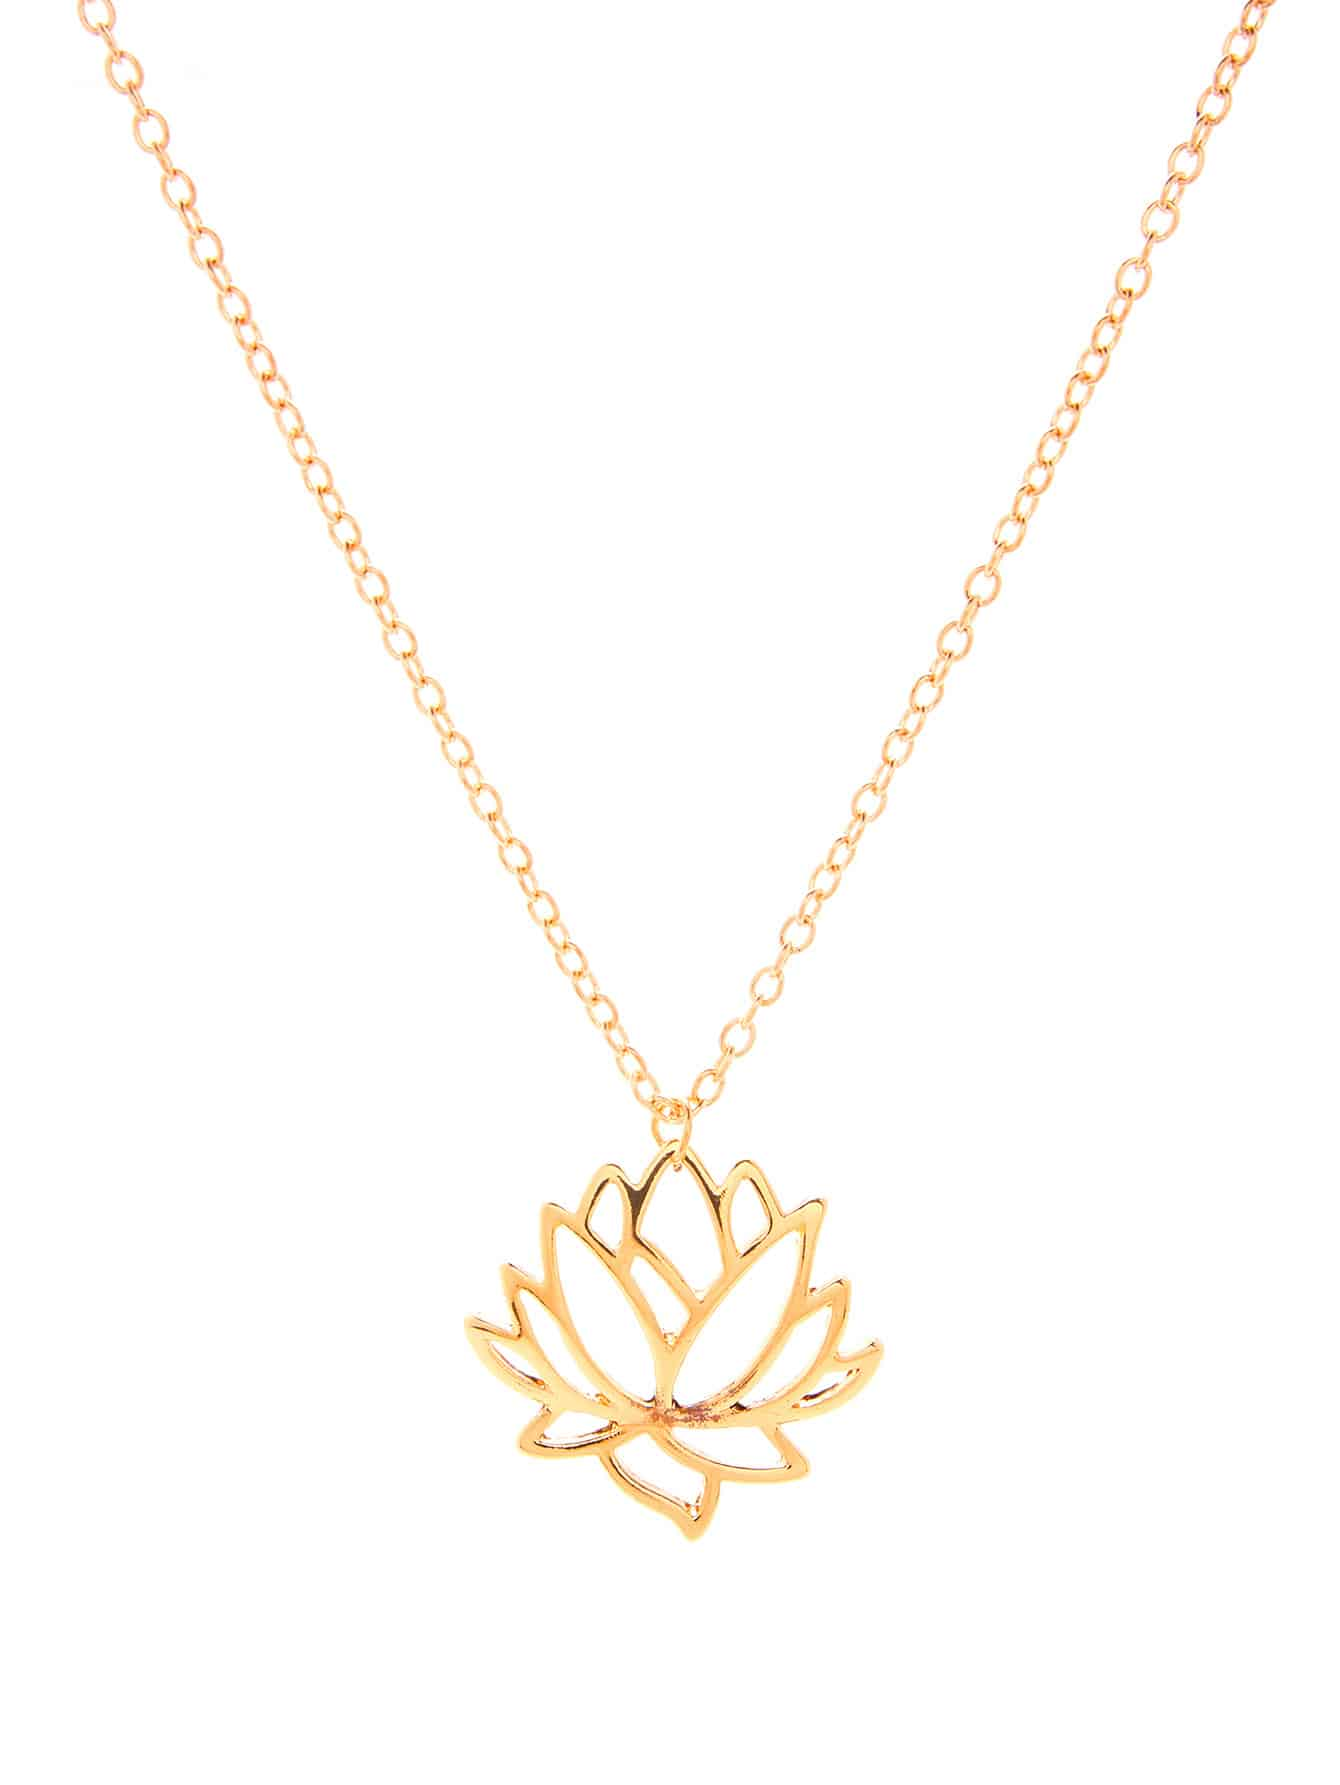 flower white gold pendant lotus chain necklace gifts valentines